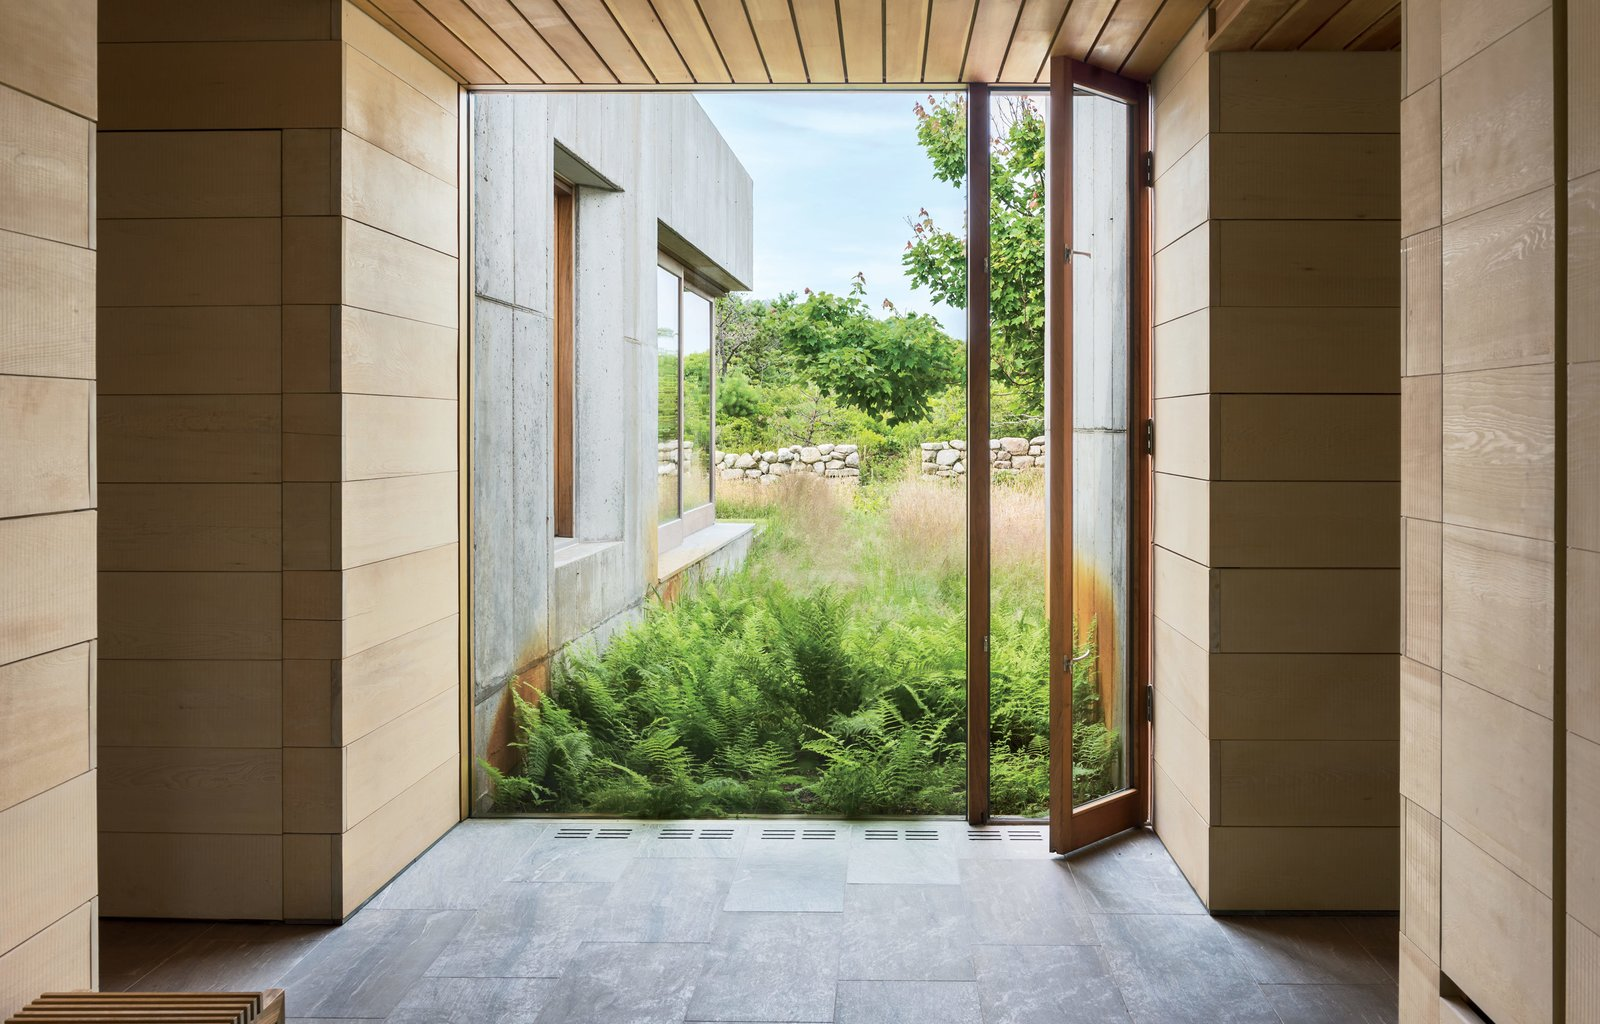 Doors, Folding, Exterior, and Wood An attentive sensitivity to site played into nearly every aspect of both the exterior andinterior spaces of the home. Architect Peter Rose collaborated with landscape architect Michael Van Valkenburgh, who worked to craft and maintain the wild, organic feel of the environs. Will Parry, a local builder, custom-fabricated all of the sustainably harvested Spanish cedar-and-glass windows and skylights throughout. Here, a vertical-swinging window at the end of the entry hallway opens directly to a lush expanse of vegetation.  Best Doors Wood Exterior Photos from Six Concrete Boxes Make a Jaw-Dropping Martha's Vineyard Home